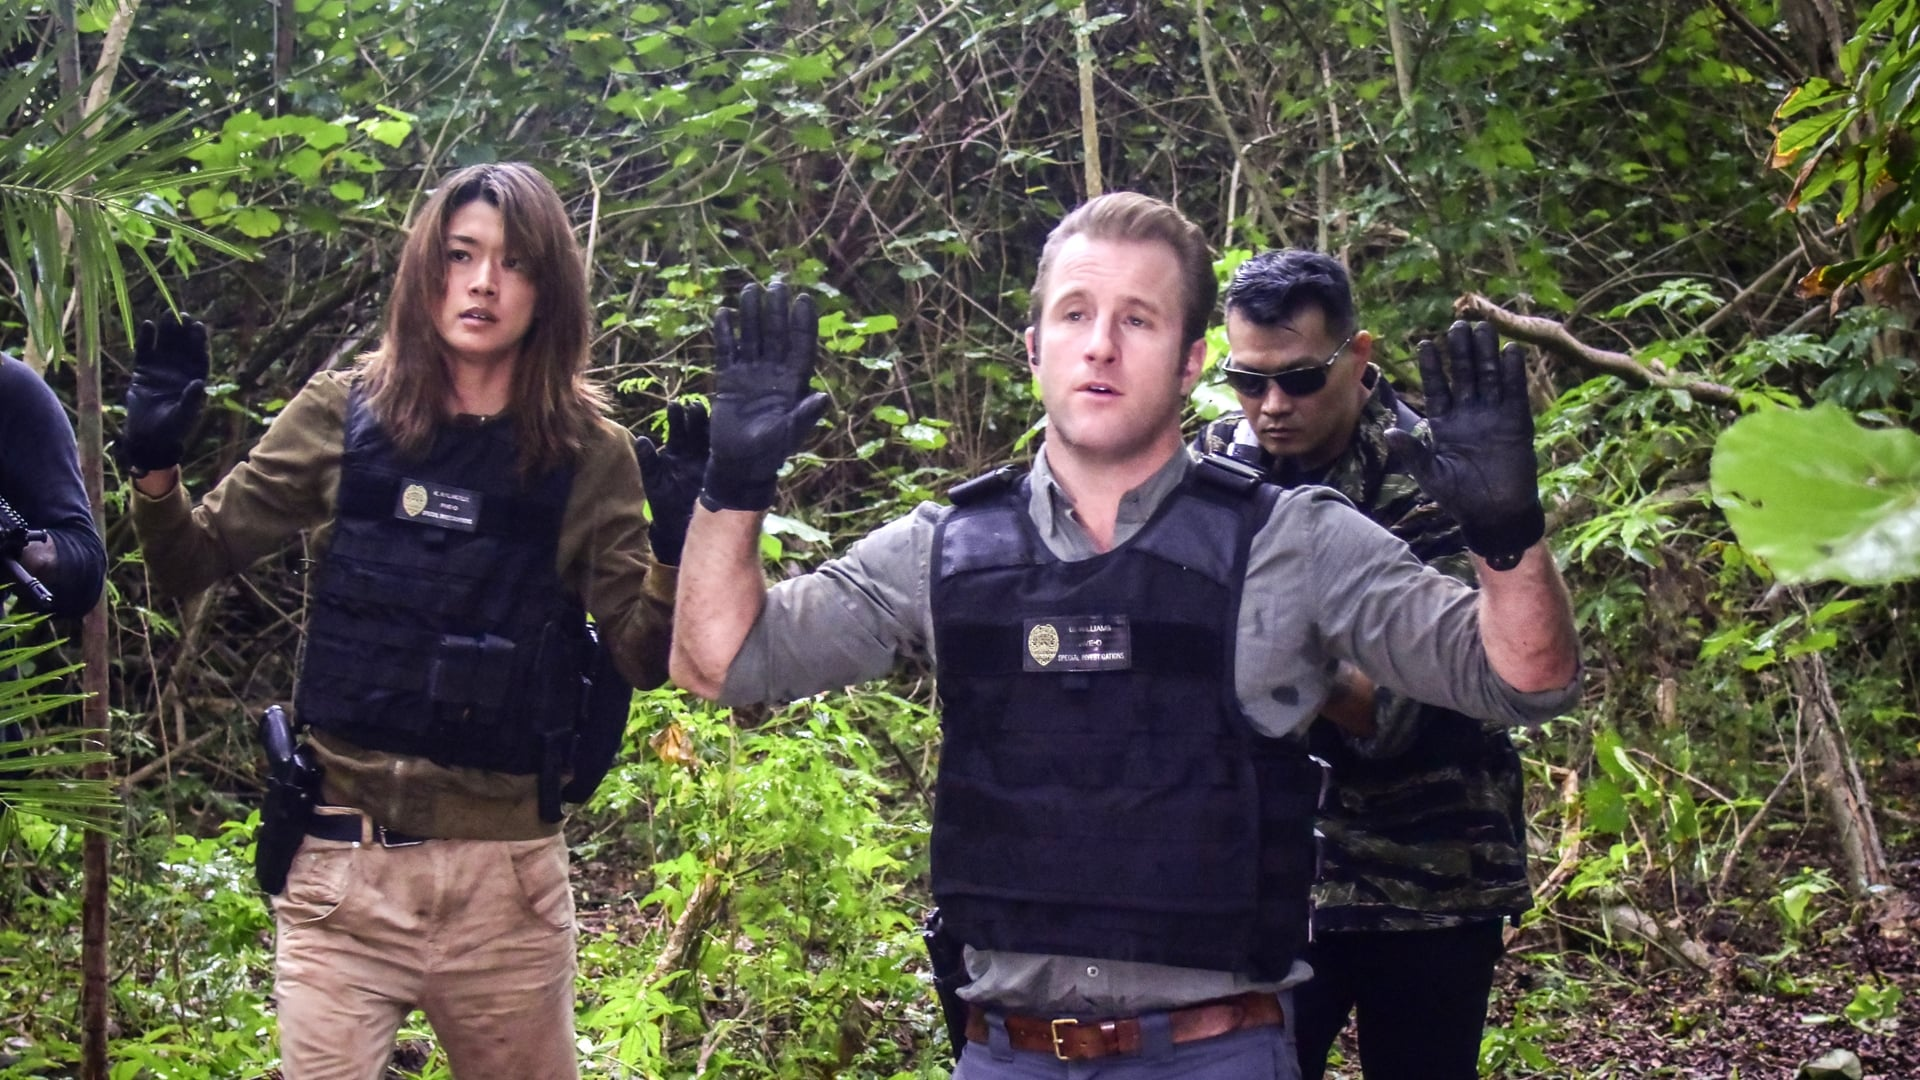 Hawaii Five-0 - Season 7 Episode 21 : Ua malo'o ka wai (The Water is Dried Up)